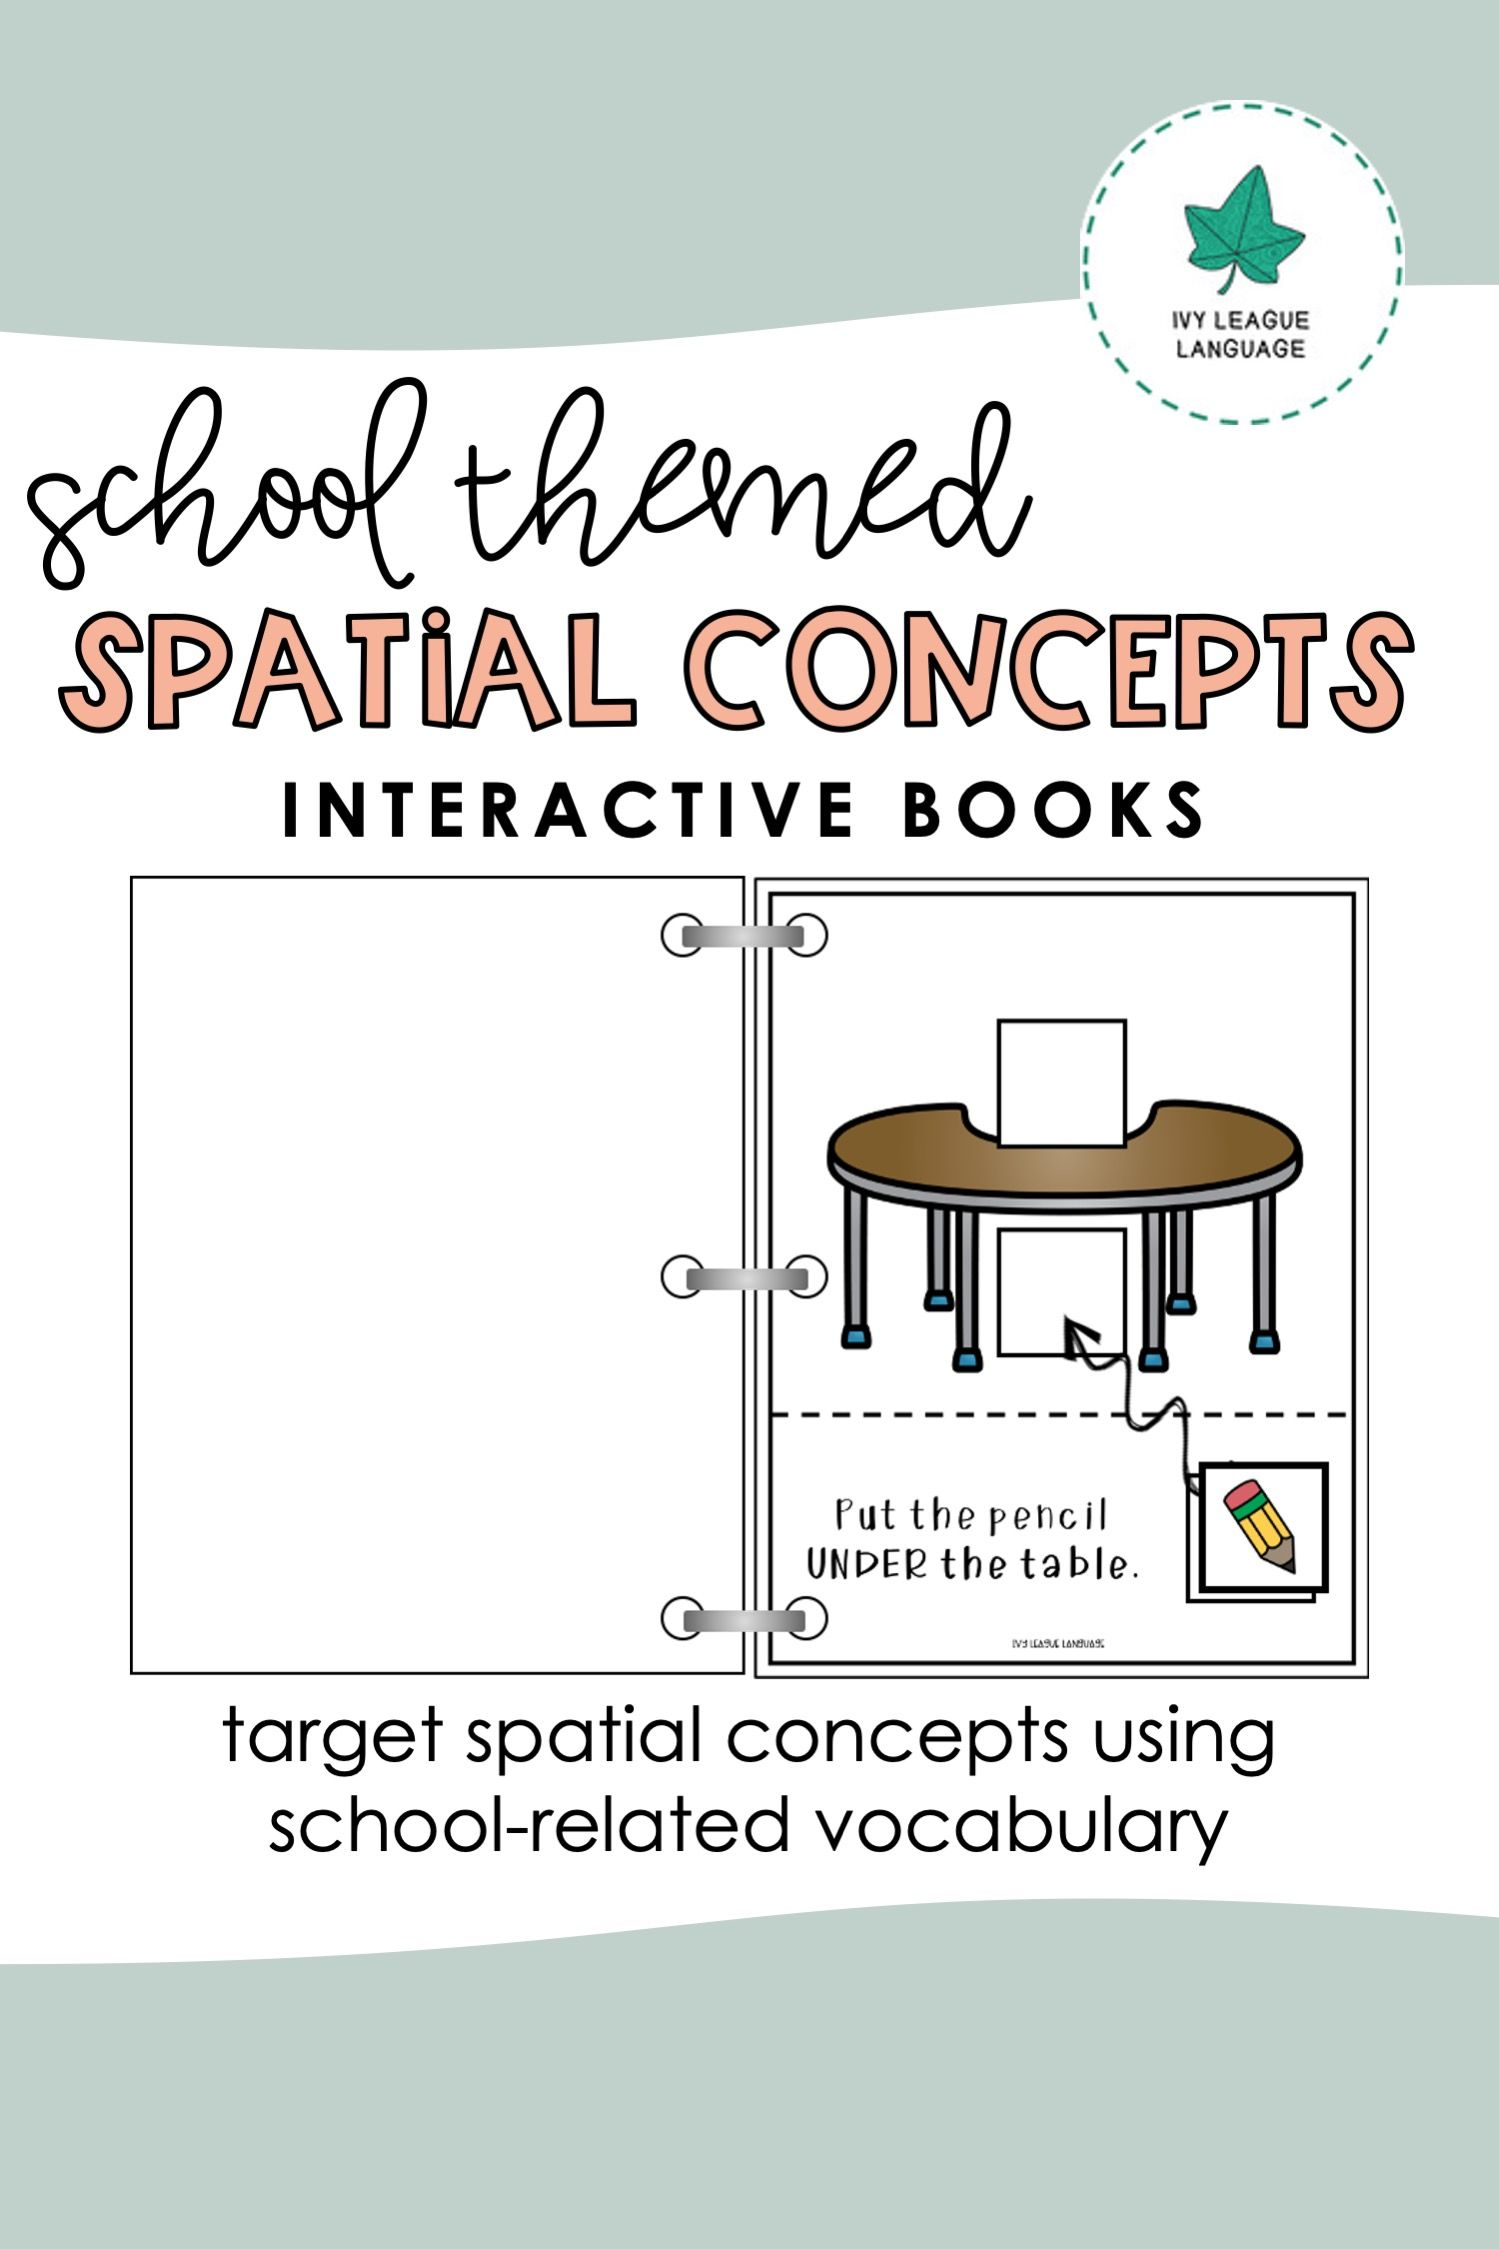 Positional Concepts Activities In 2020 Interactive Book Spatial Concepts Booklet [ 2249 x 1499 Pixel ]